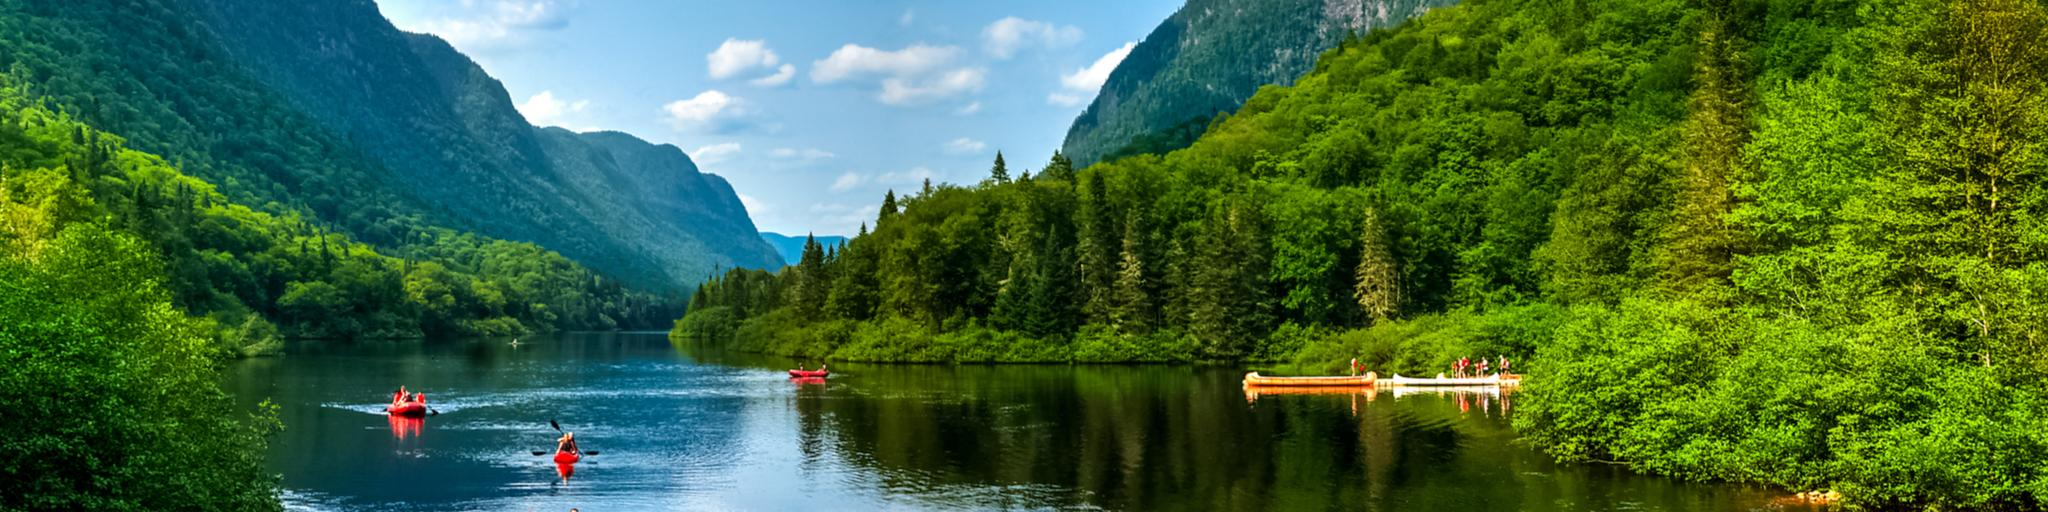 People canoeing and kayaking on a lake in Jacques-Cartier Park, Quebec